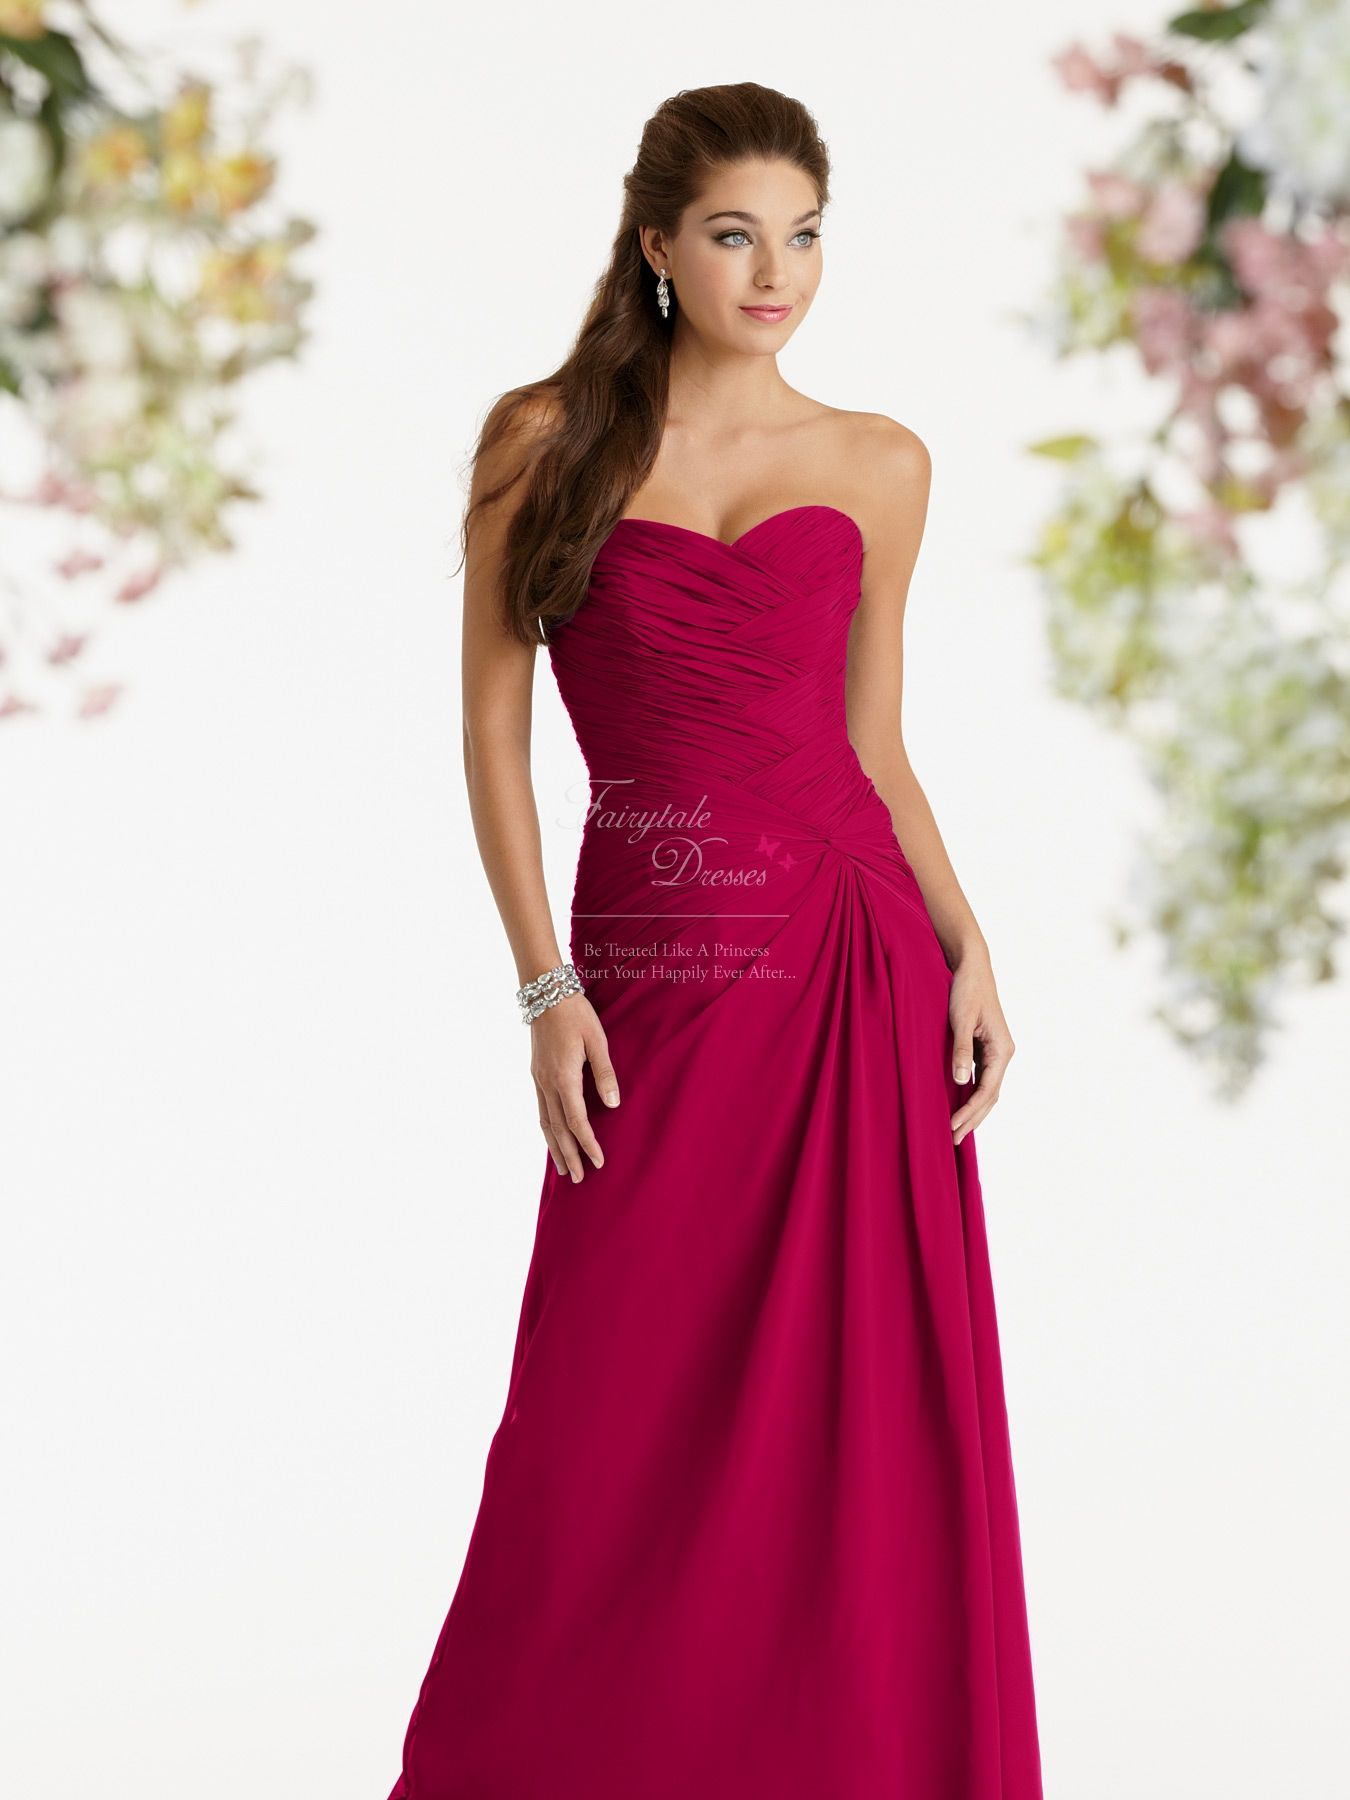 Not this color.... But this style bridemaid dress is